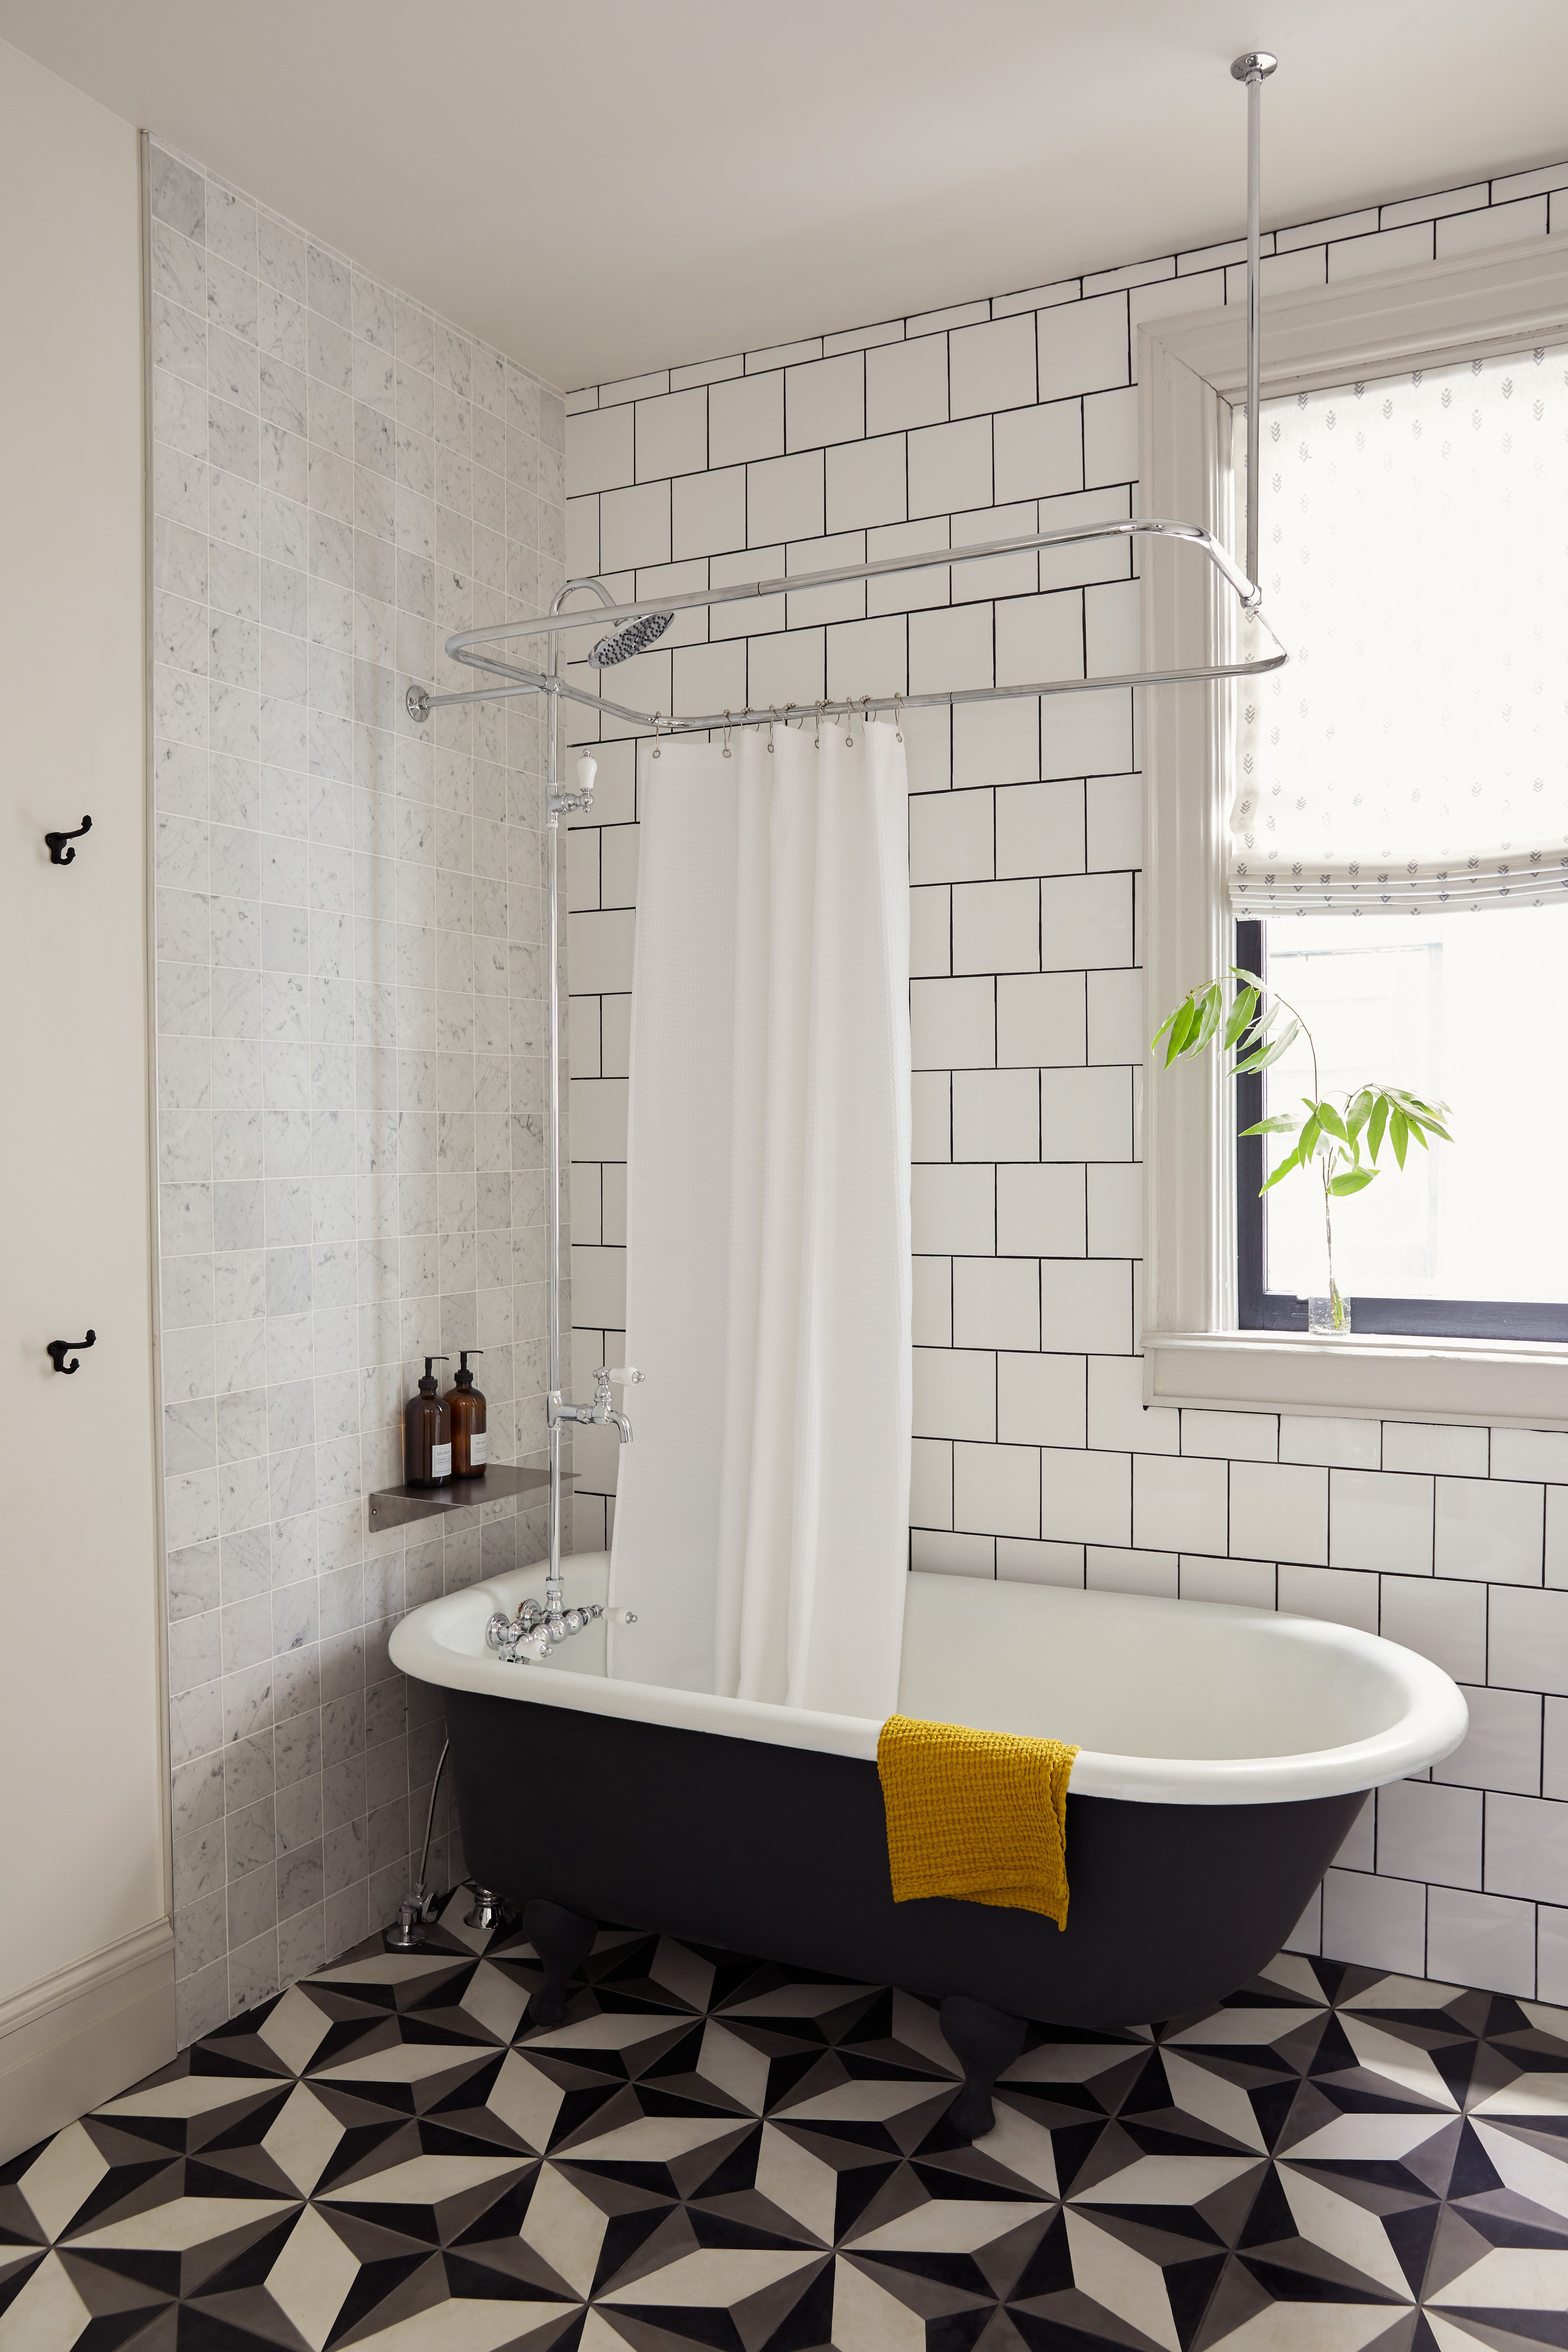 White Subway Tiles Have Been De Rigueur For Tiled Walls Since The